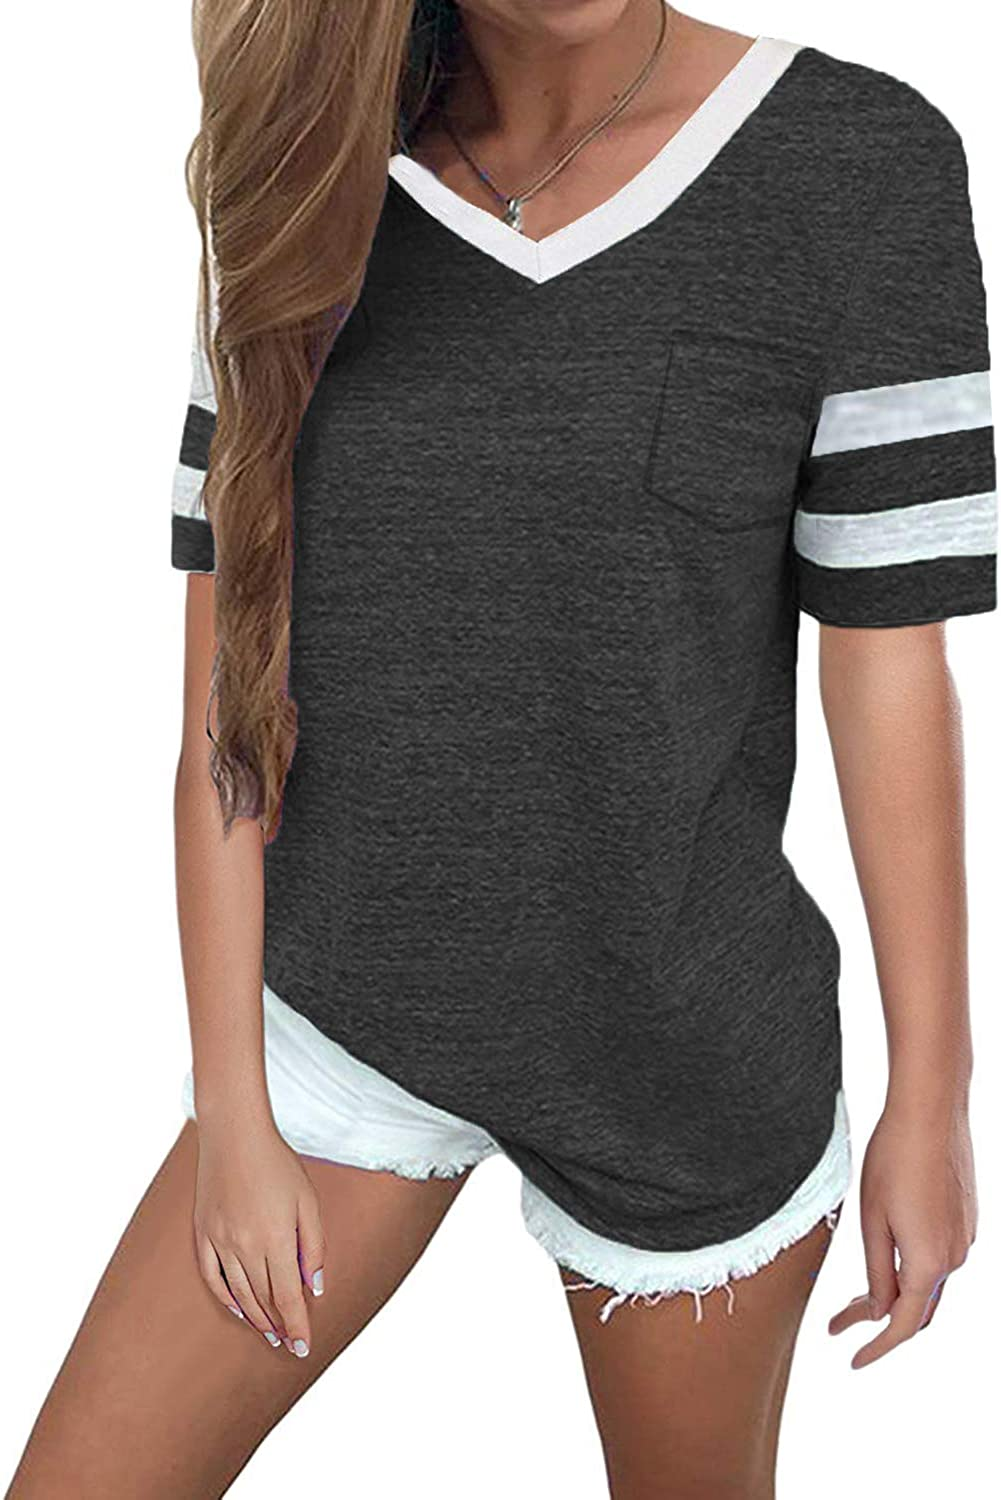 Sweetnight Womens Summer Short Sleeve Baseball Tee color Block Loose Sport T Shirt Casual Tunic Tops with Pockets